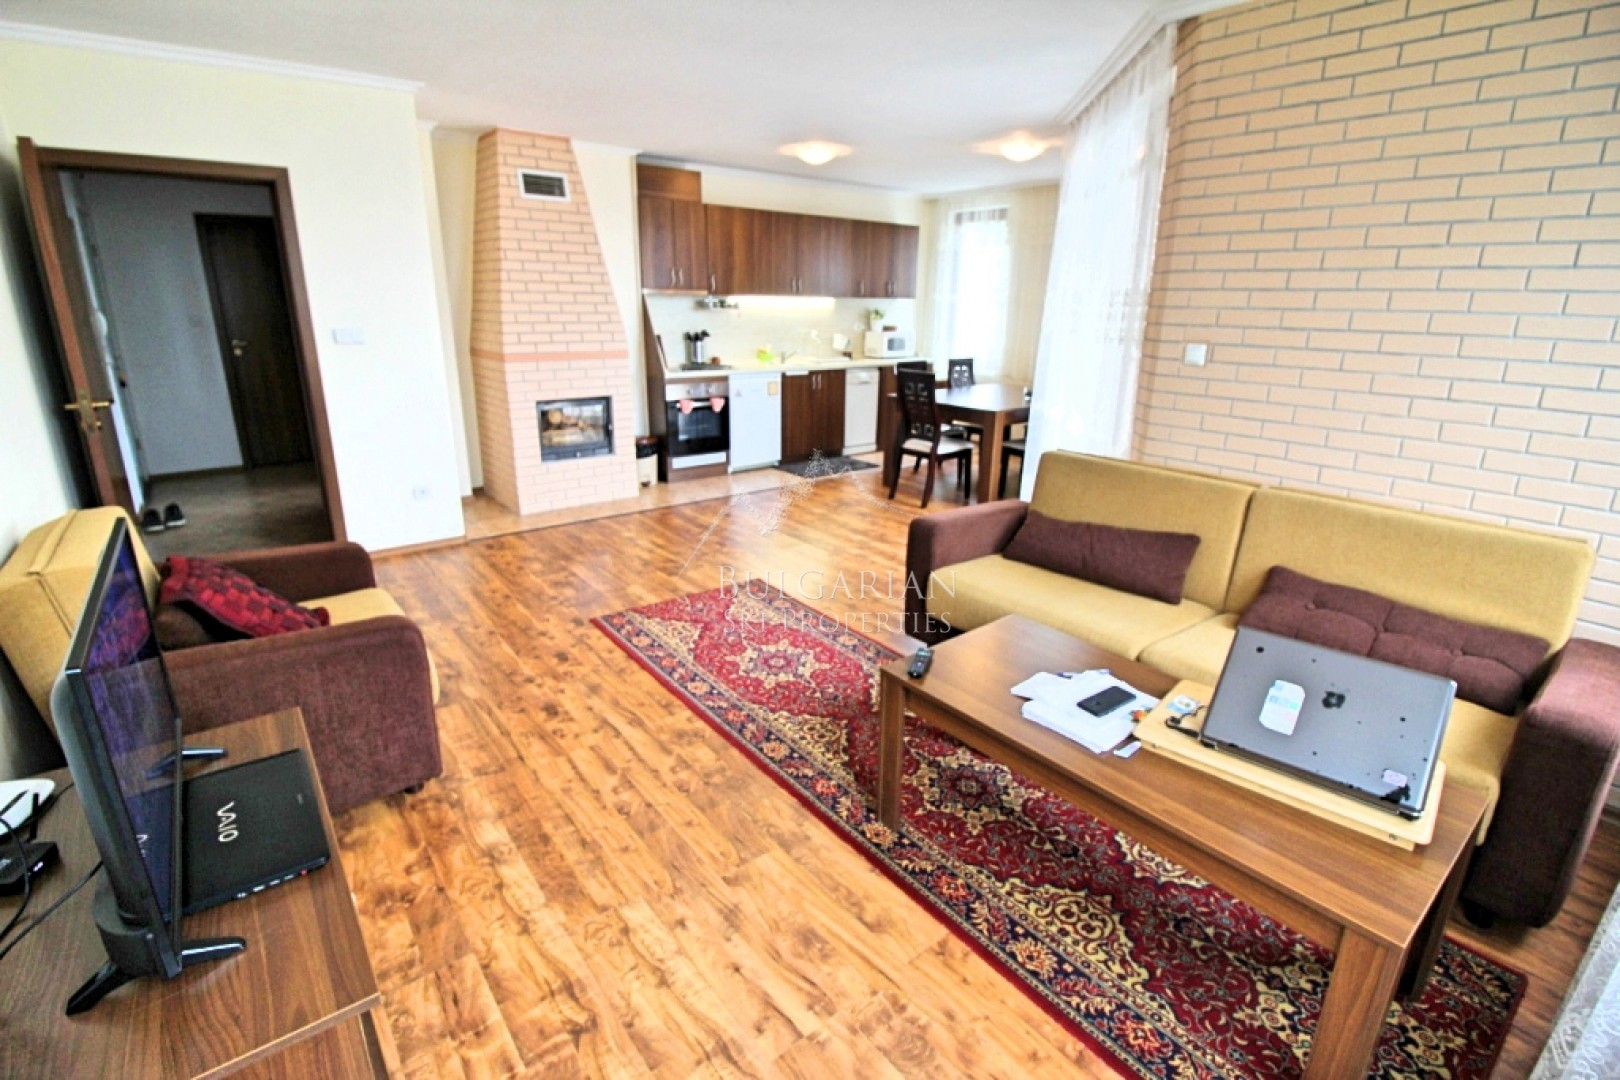 Bansko: spacious two-bedroom apartment for sale in Mountain Dream complex